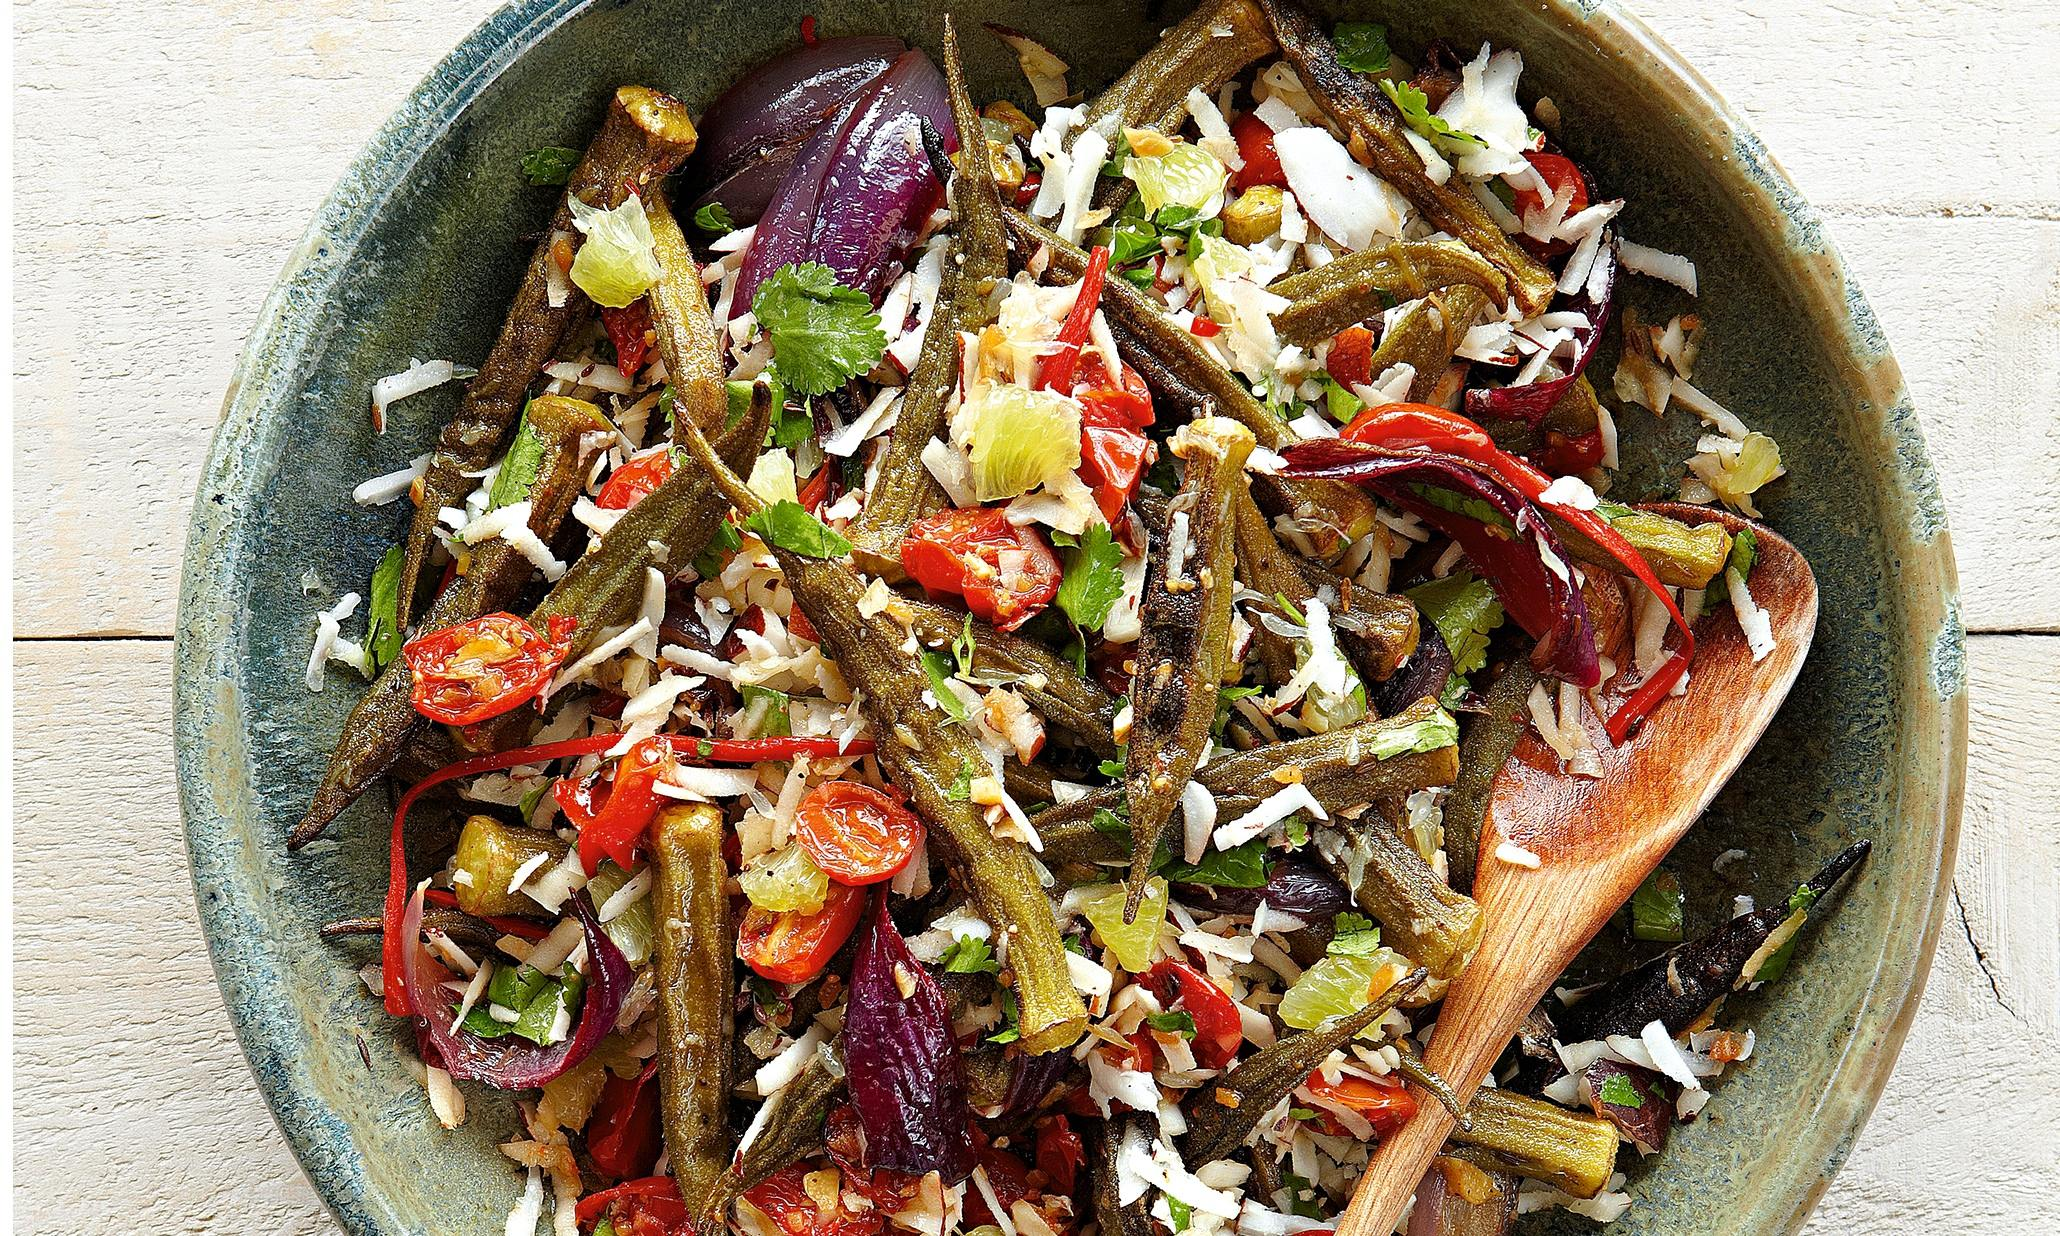 For the love of pod: Yotam Ottolenghi's okra recipes